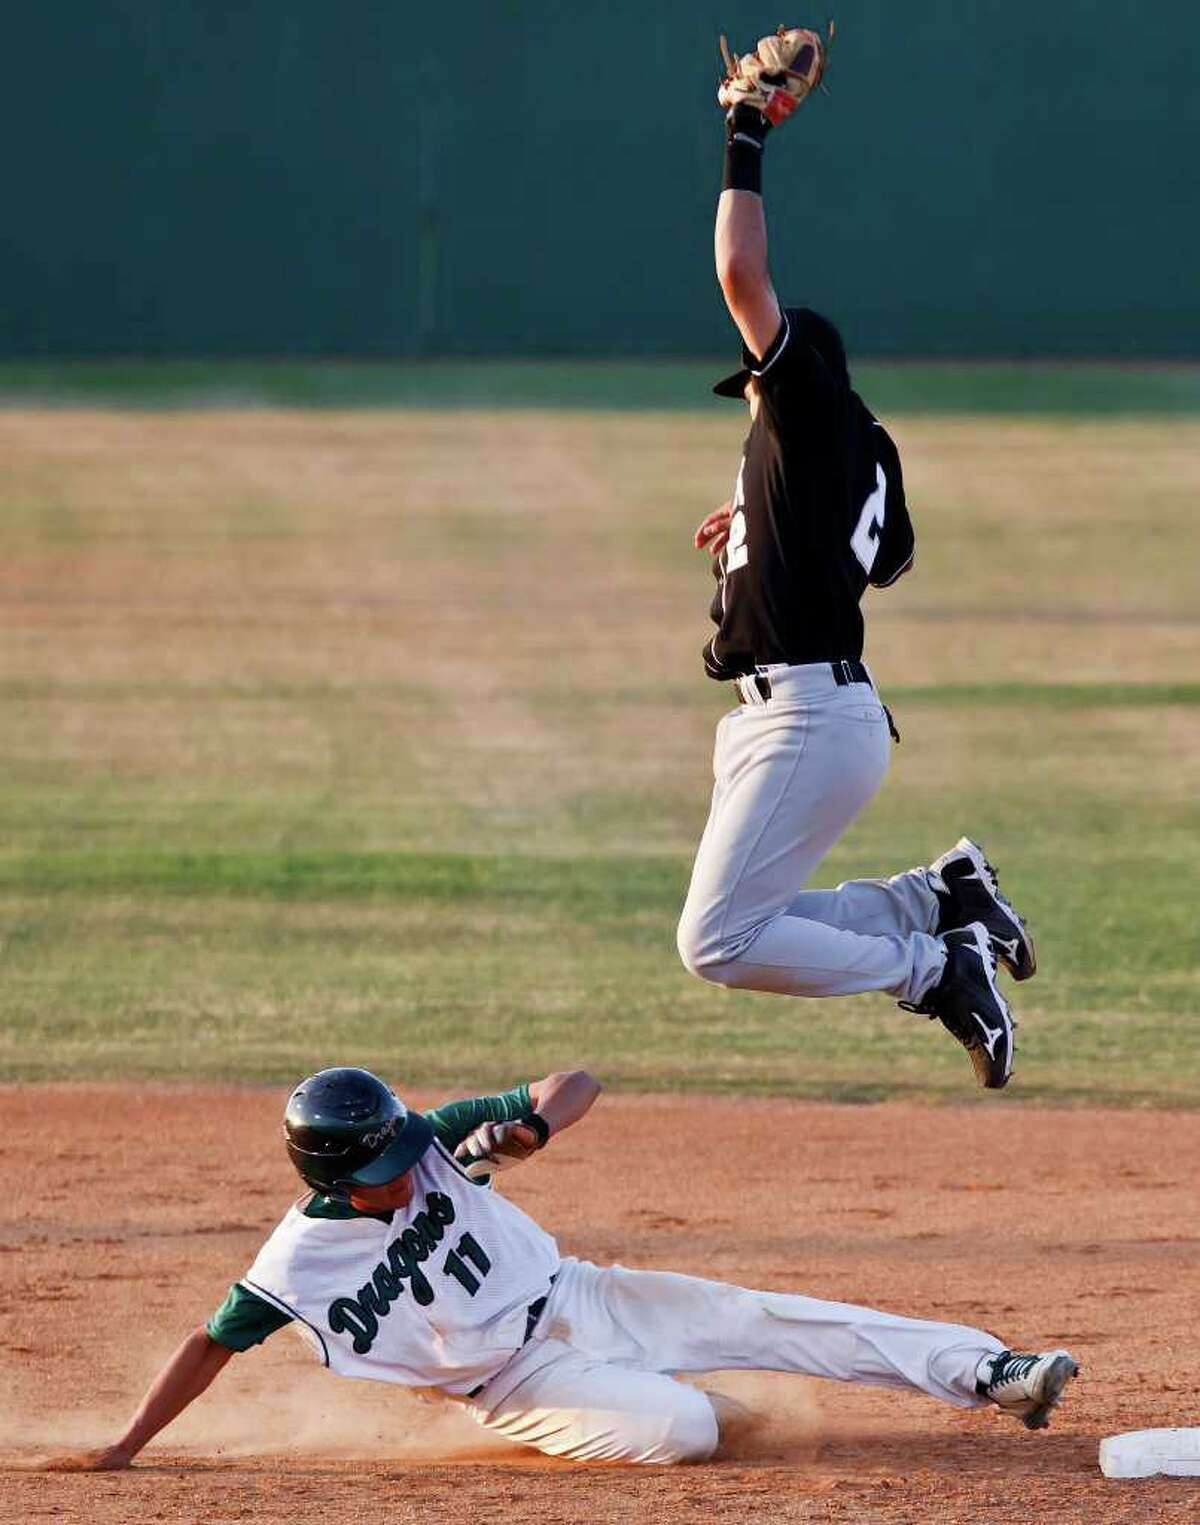 Clark shortstop Jason Cervantes leaps high into the air to catch a throw from third base as Southwest's Edgar Vaszuez slides safely back to second base during the Cougar's 3-2 first round playoff victory over the Dragons at Northside Field #2 on May 5, 2011. MARVIN PFEIFFER/mpfeiffer@express-news.net